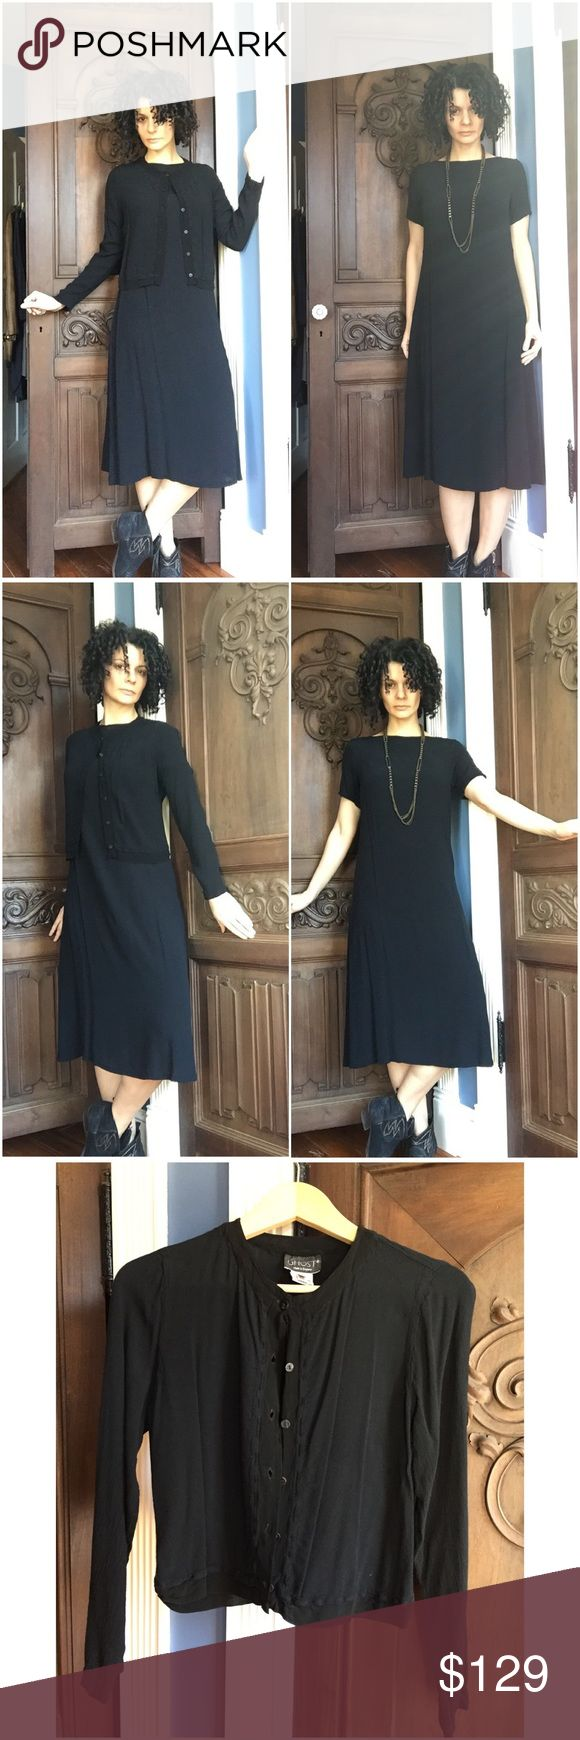 GHOST Dress/Cardi 2-piece Set Can be worn together or on their own, this designer uses fabrics and techniques to make clothes flattering on any body type. Easy to wear and care for. See other Ghost listing in my closet! Ghost Dresses Midi